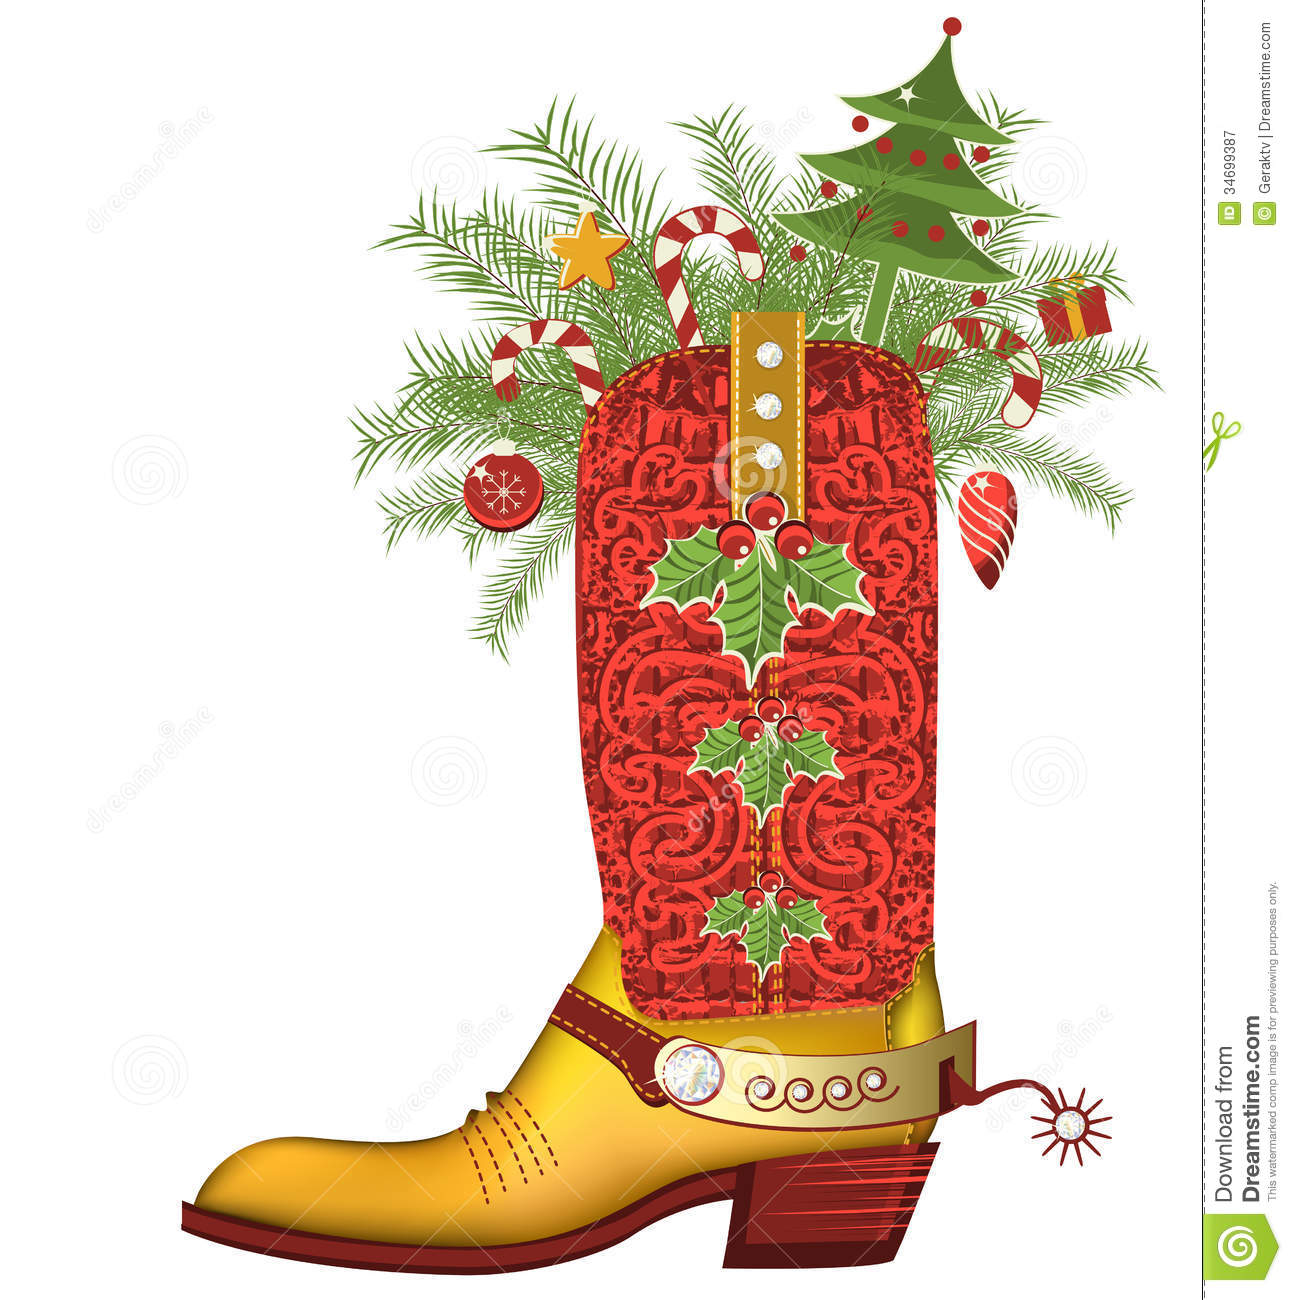 Christmas Shoe.Christmas Cowboy Boot Luxury Shoe Isolated On Whit Stock